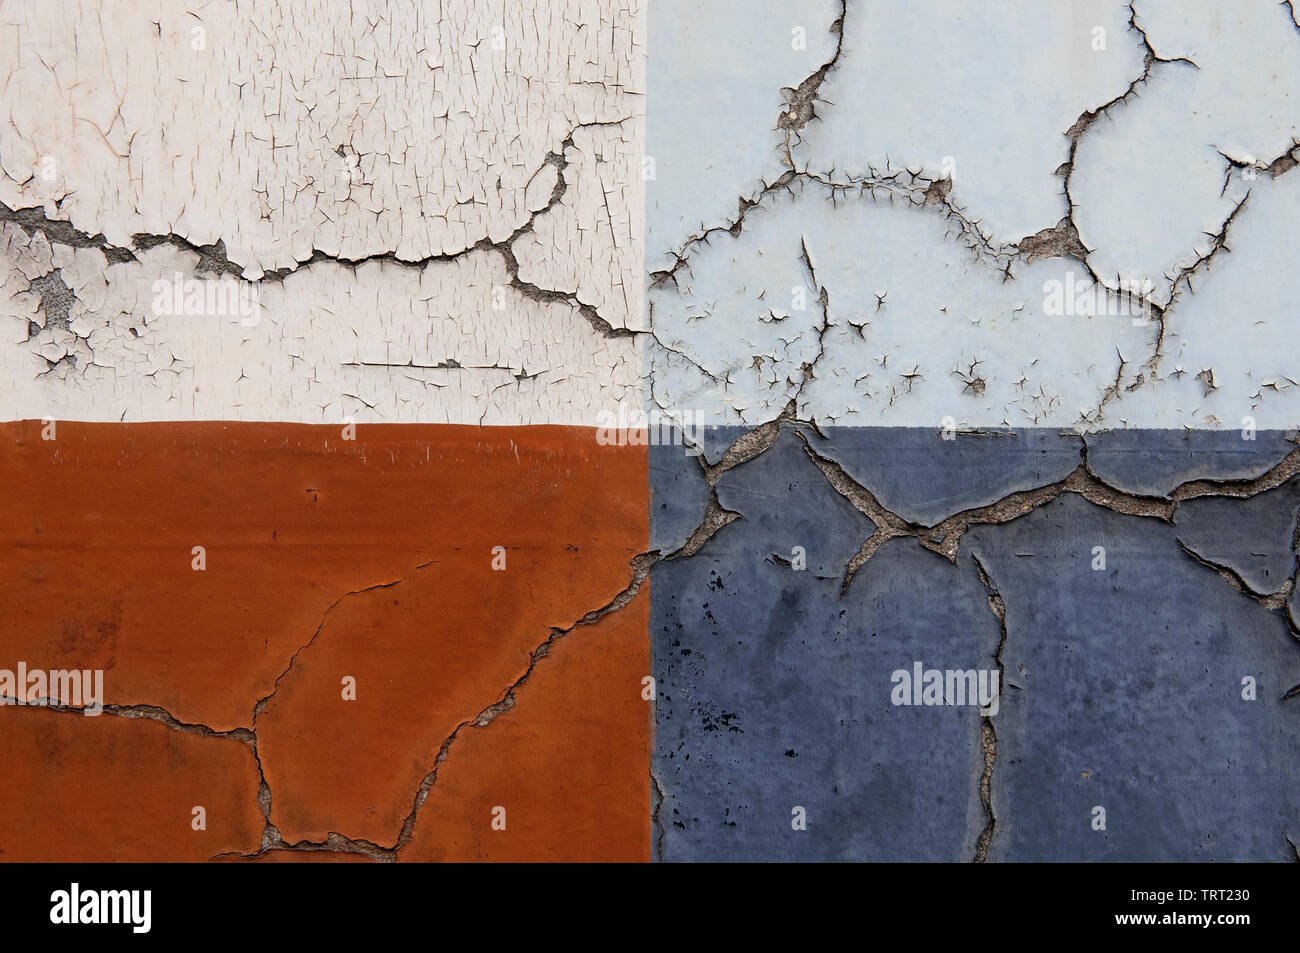 Four Rectangles Of Different Coloured Peeling Paints On An Old Cracked Shop Front In London's East End - Stock Image